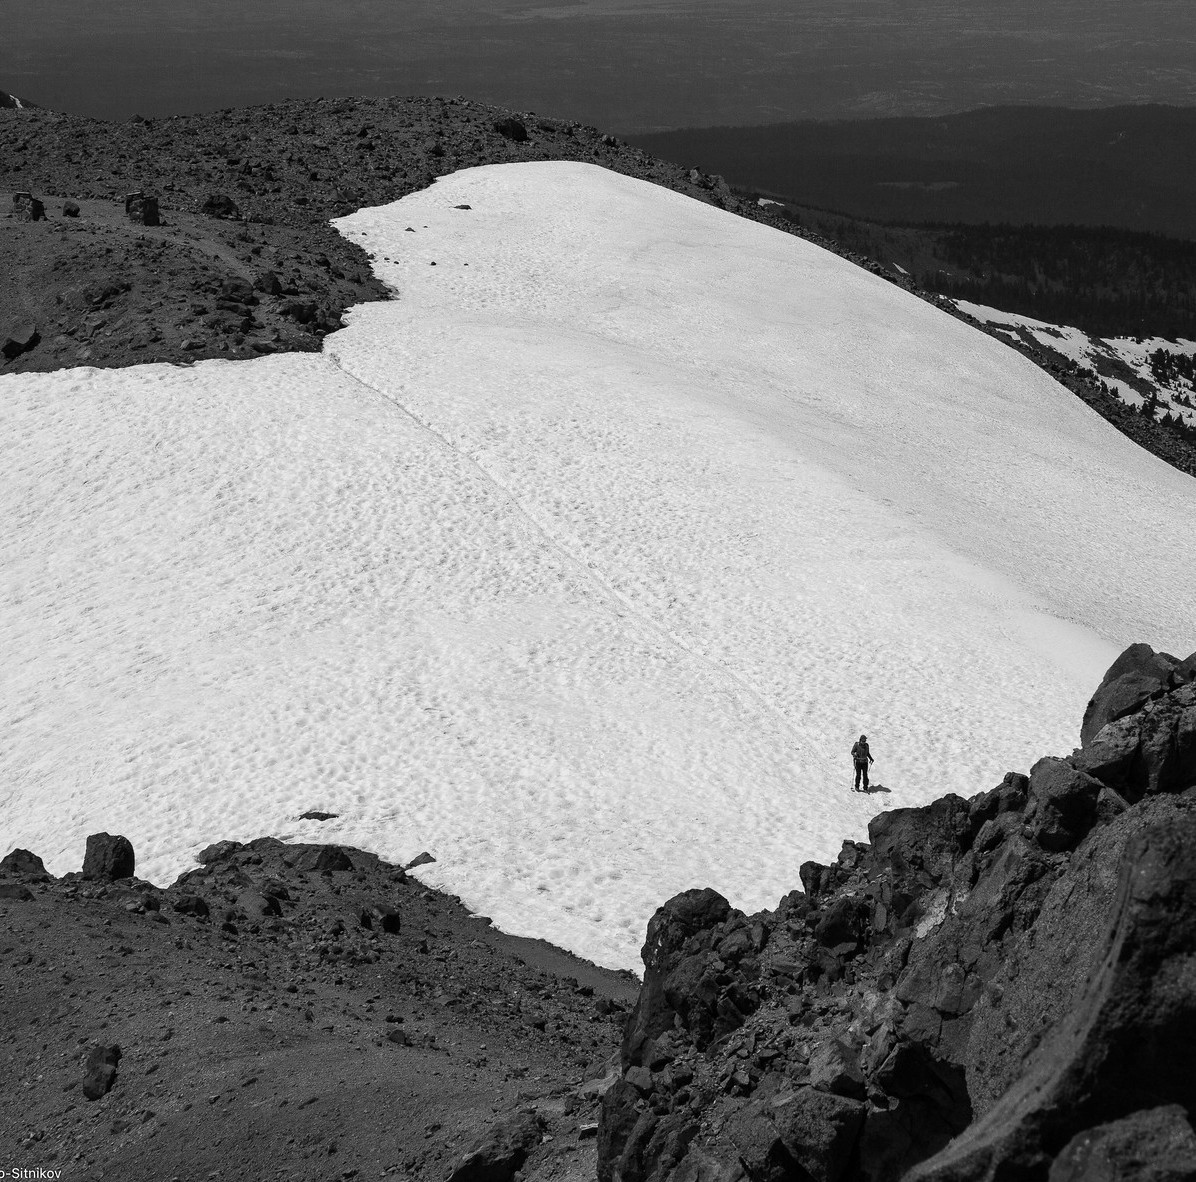 Lassen Peak: almost there